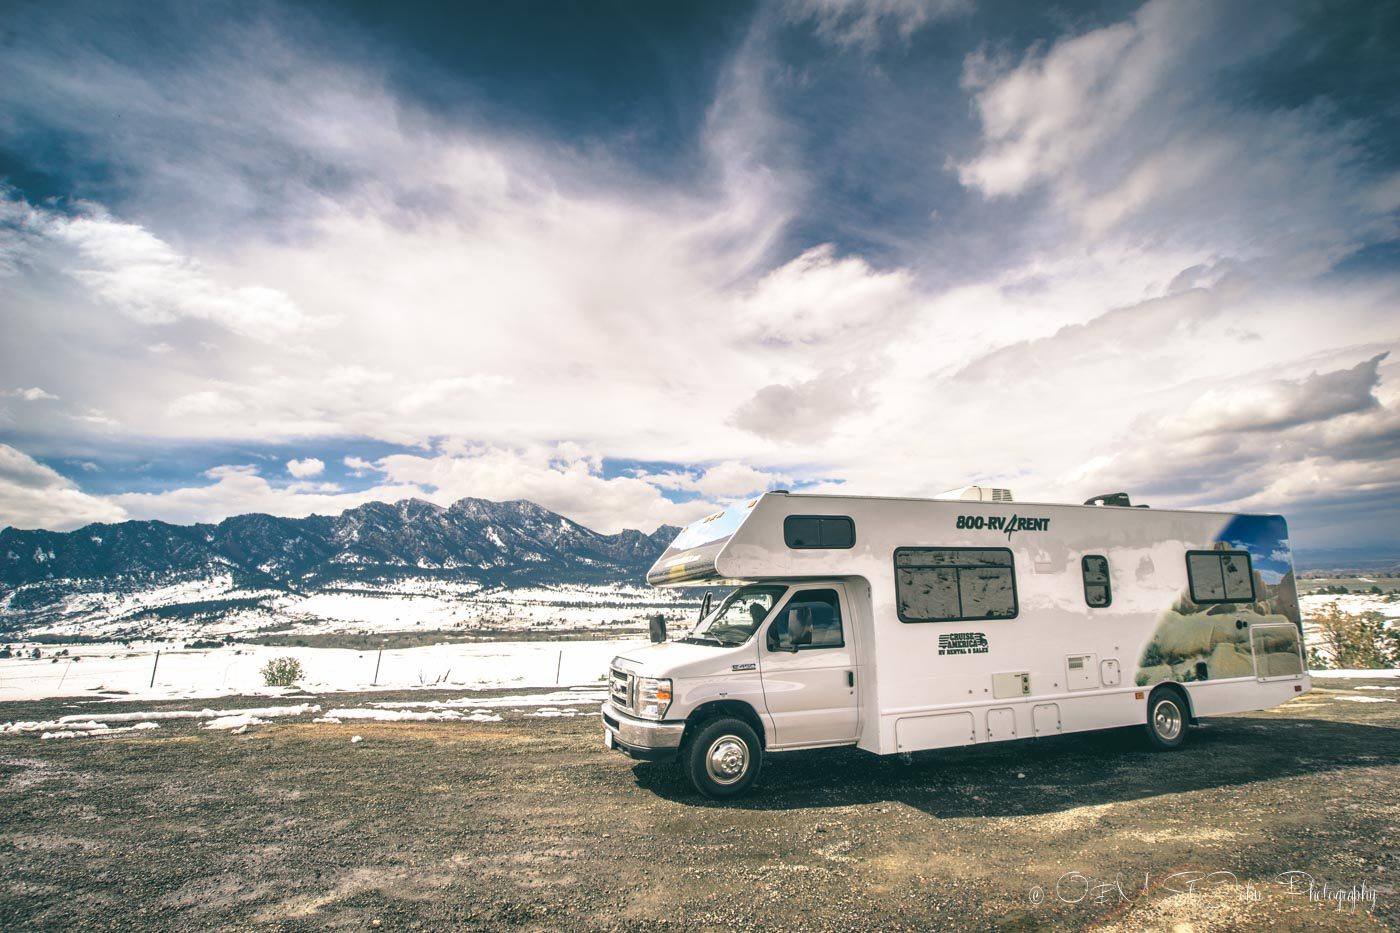 Colorado road trip: The RV responsible for taking us around Colorado